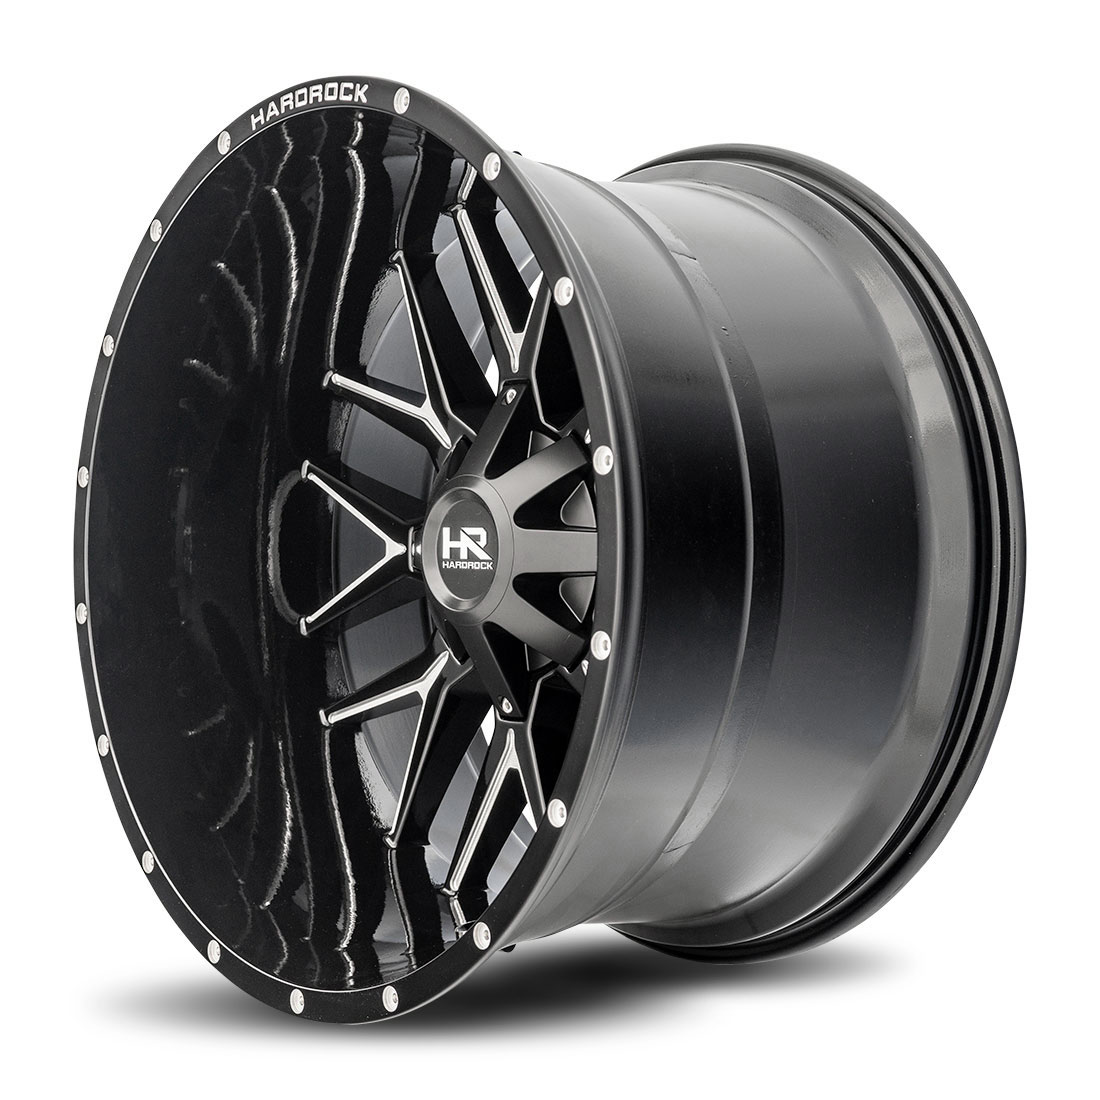 Hardrock Offroad Wheels H700 Affliction - Gloss Black Milled - 24x14